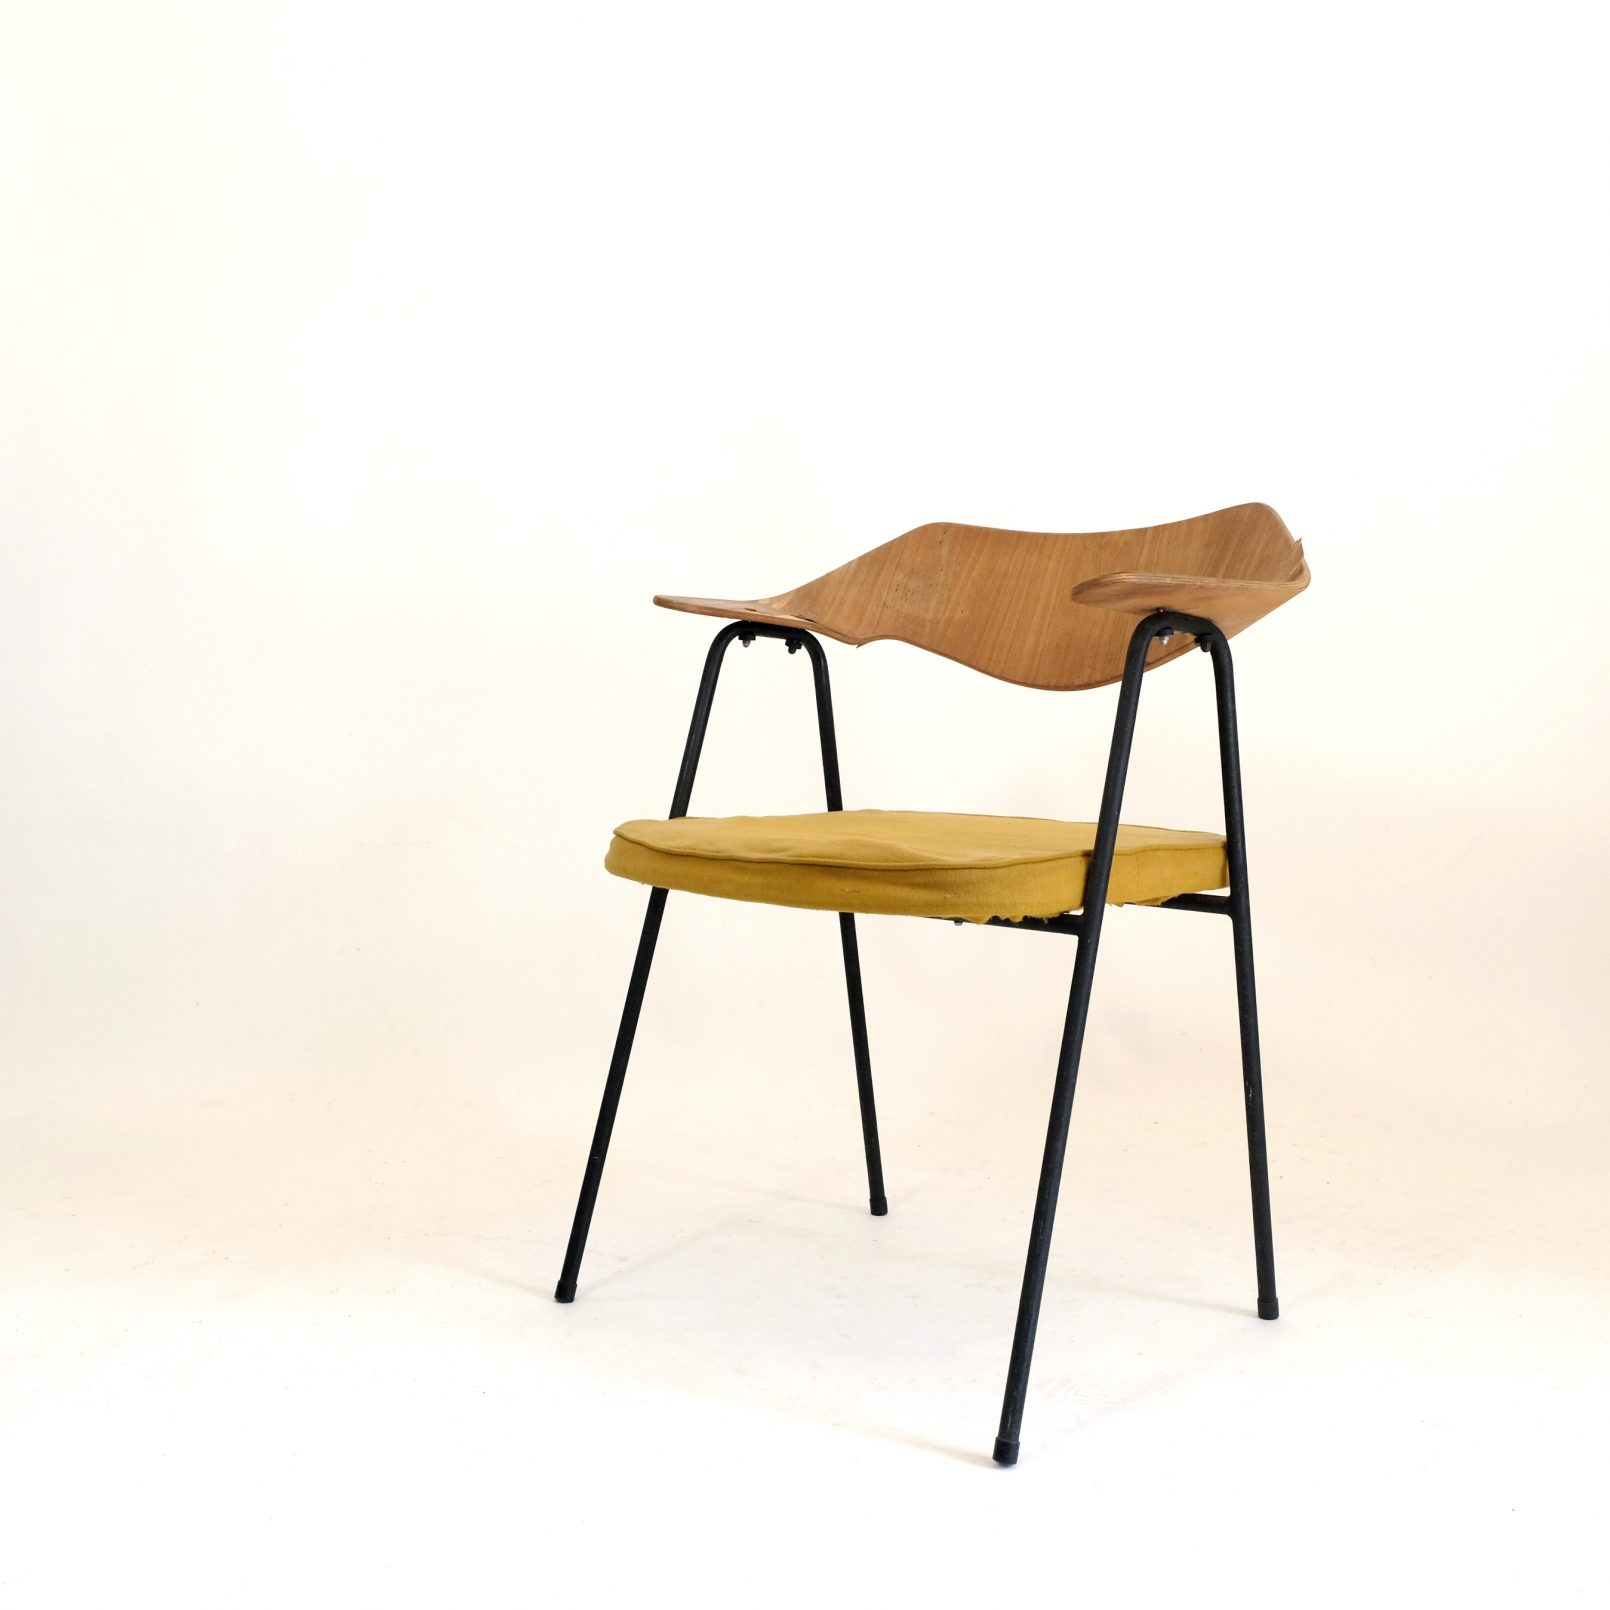 Robin & Lucienne Day, 675 armchair, 1950s, to be restored.